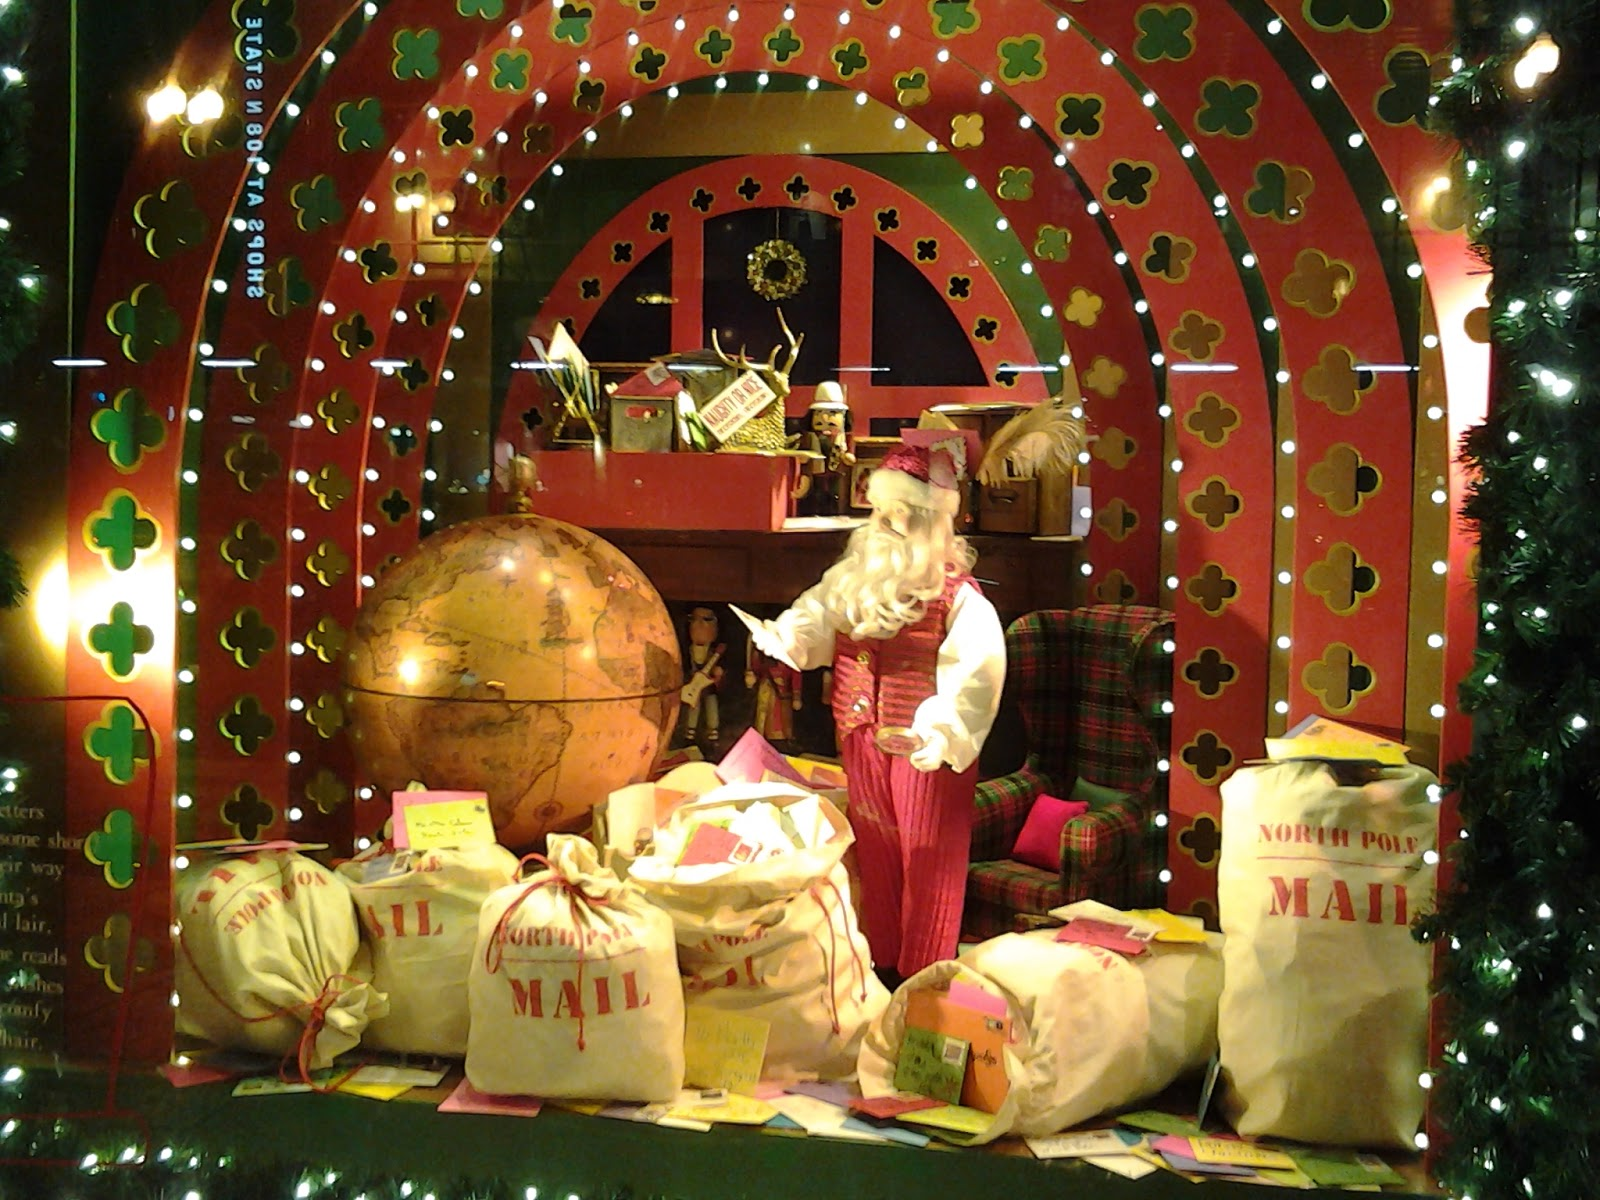 Chicago Macy's Christmas Windows 2014; Santa's Mail